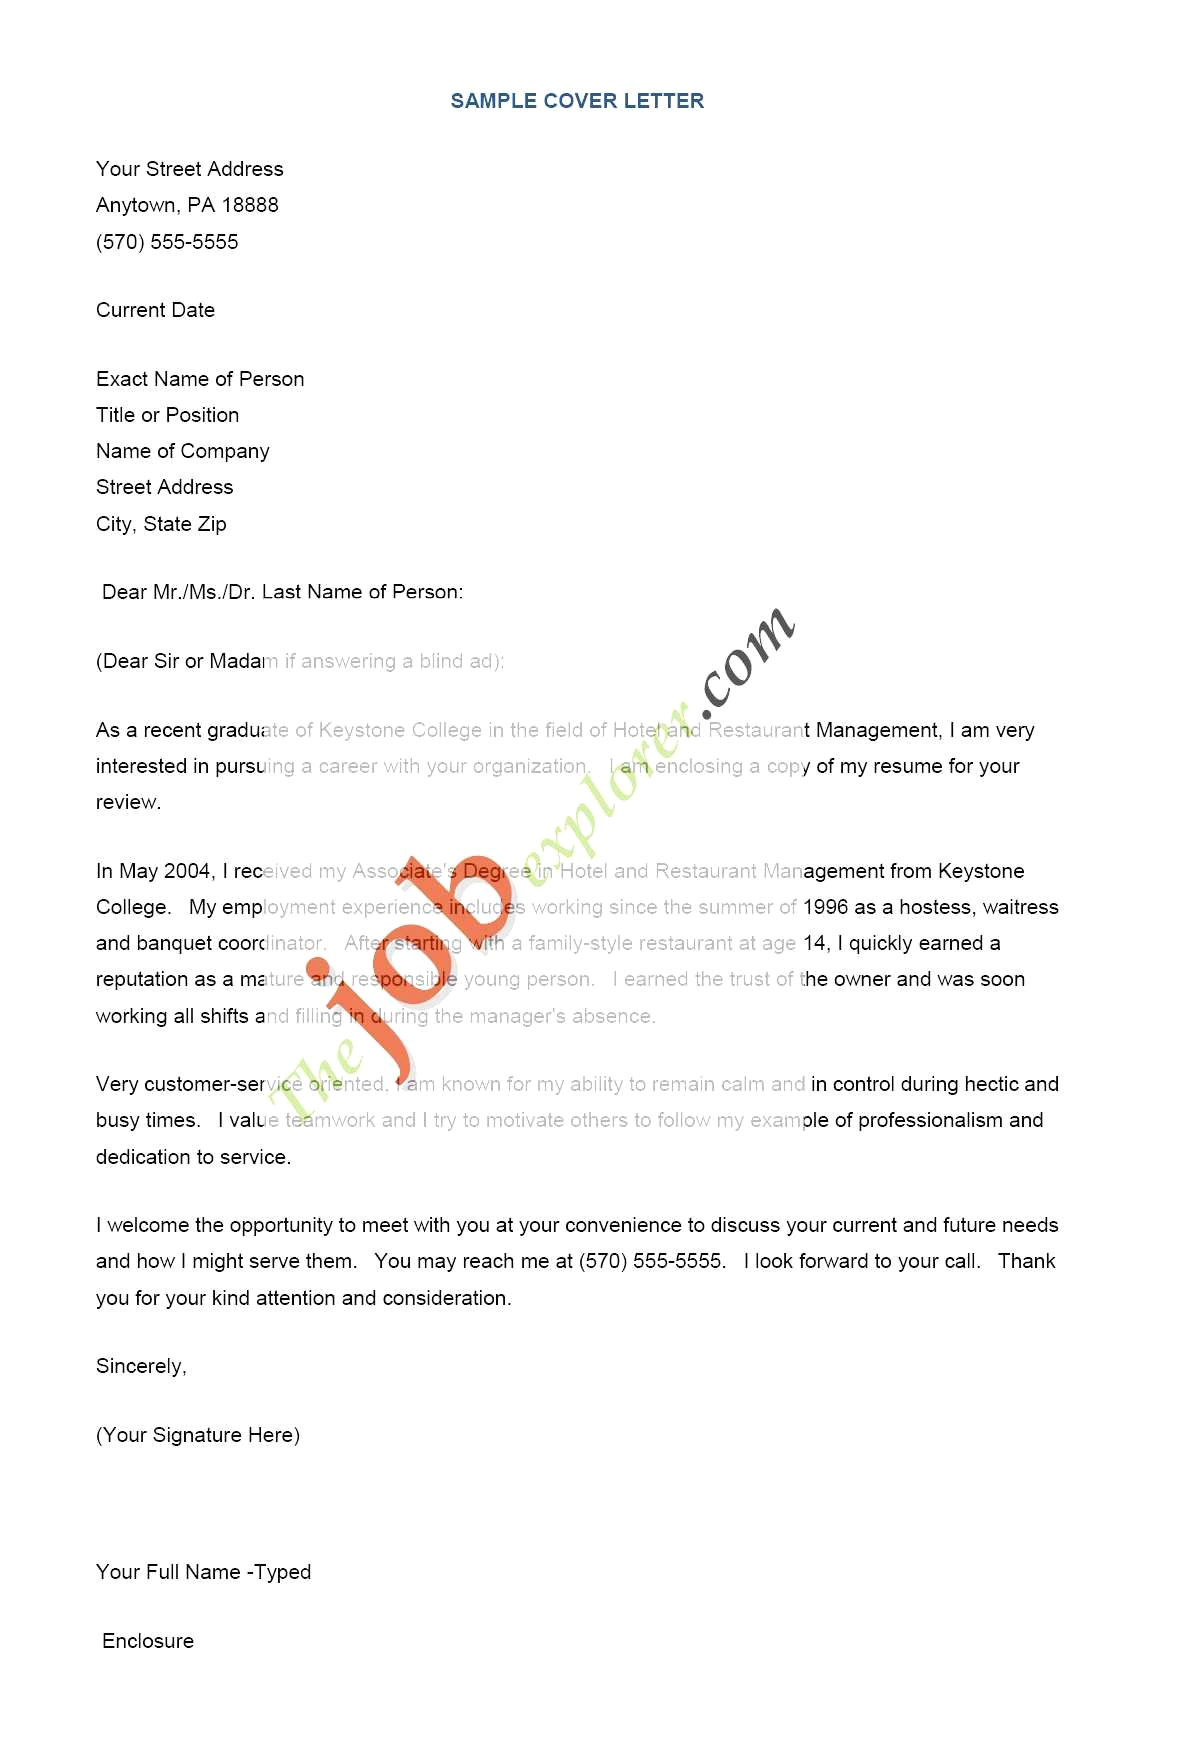 Cover Letter Review - 50 Awesome Sample Cover Letters for Resume